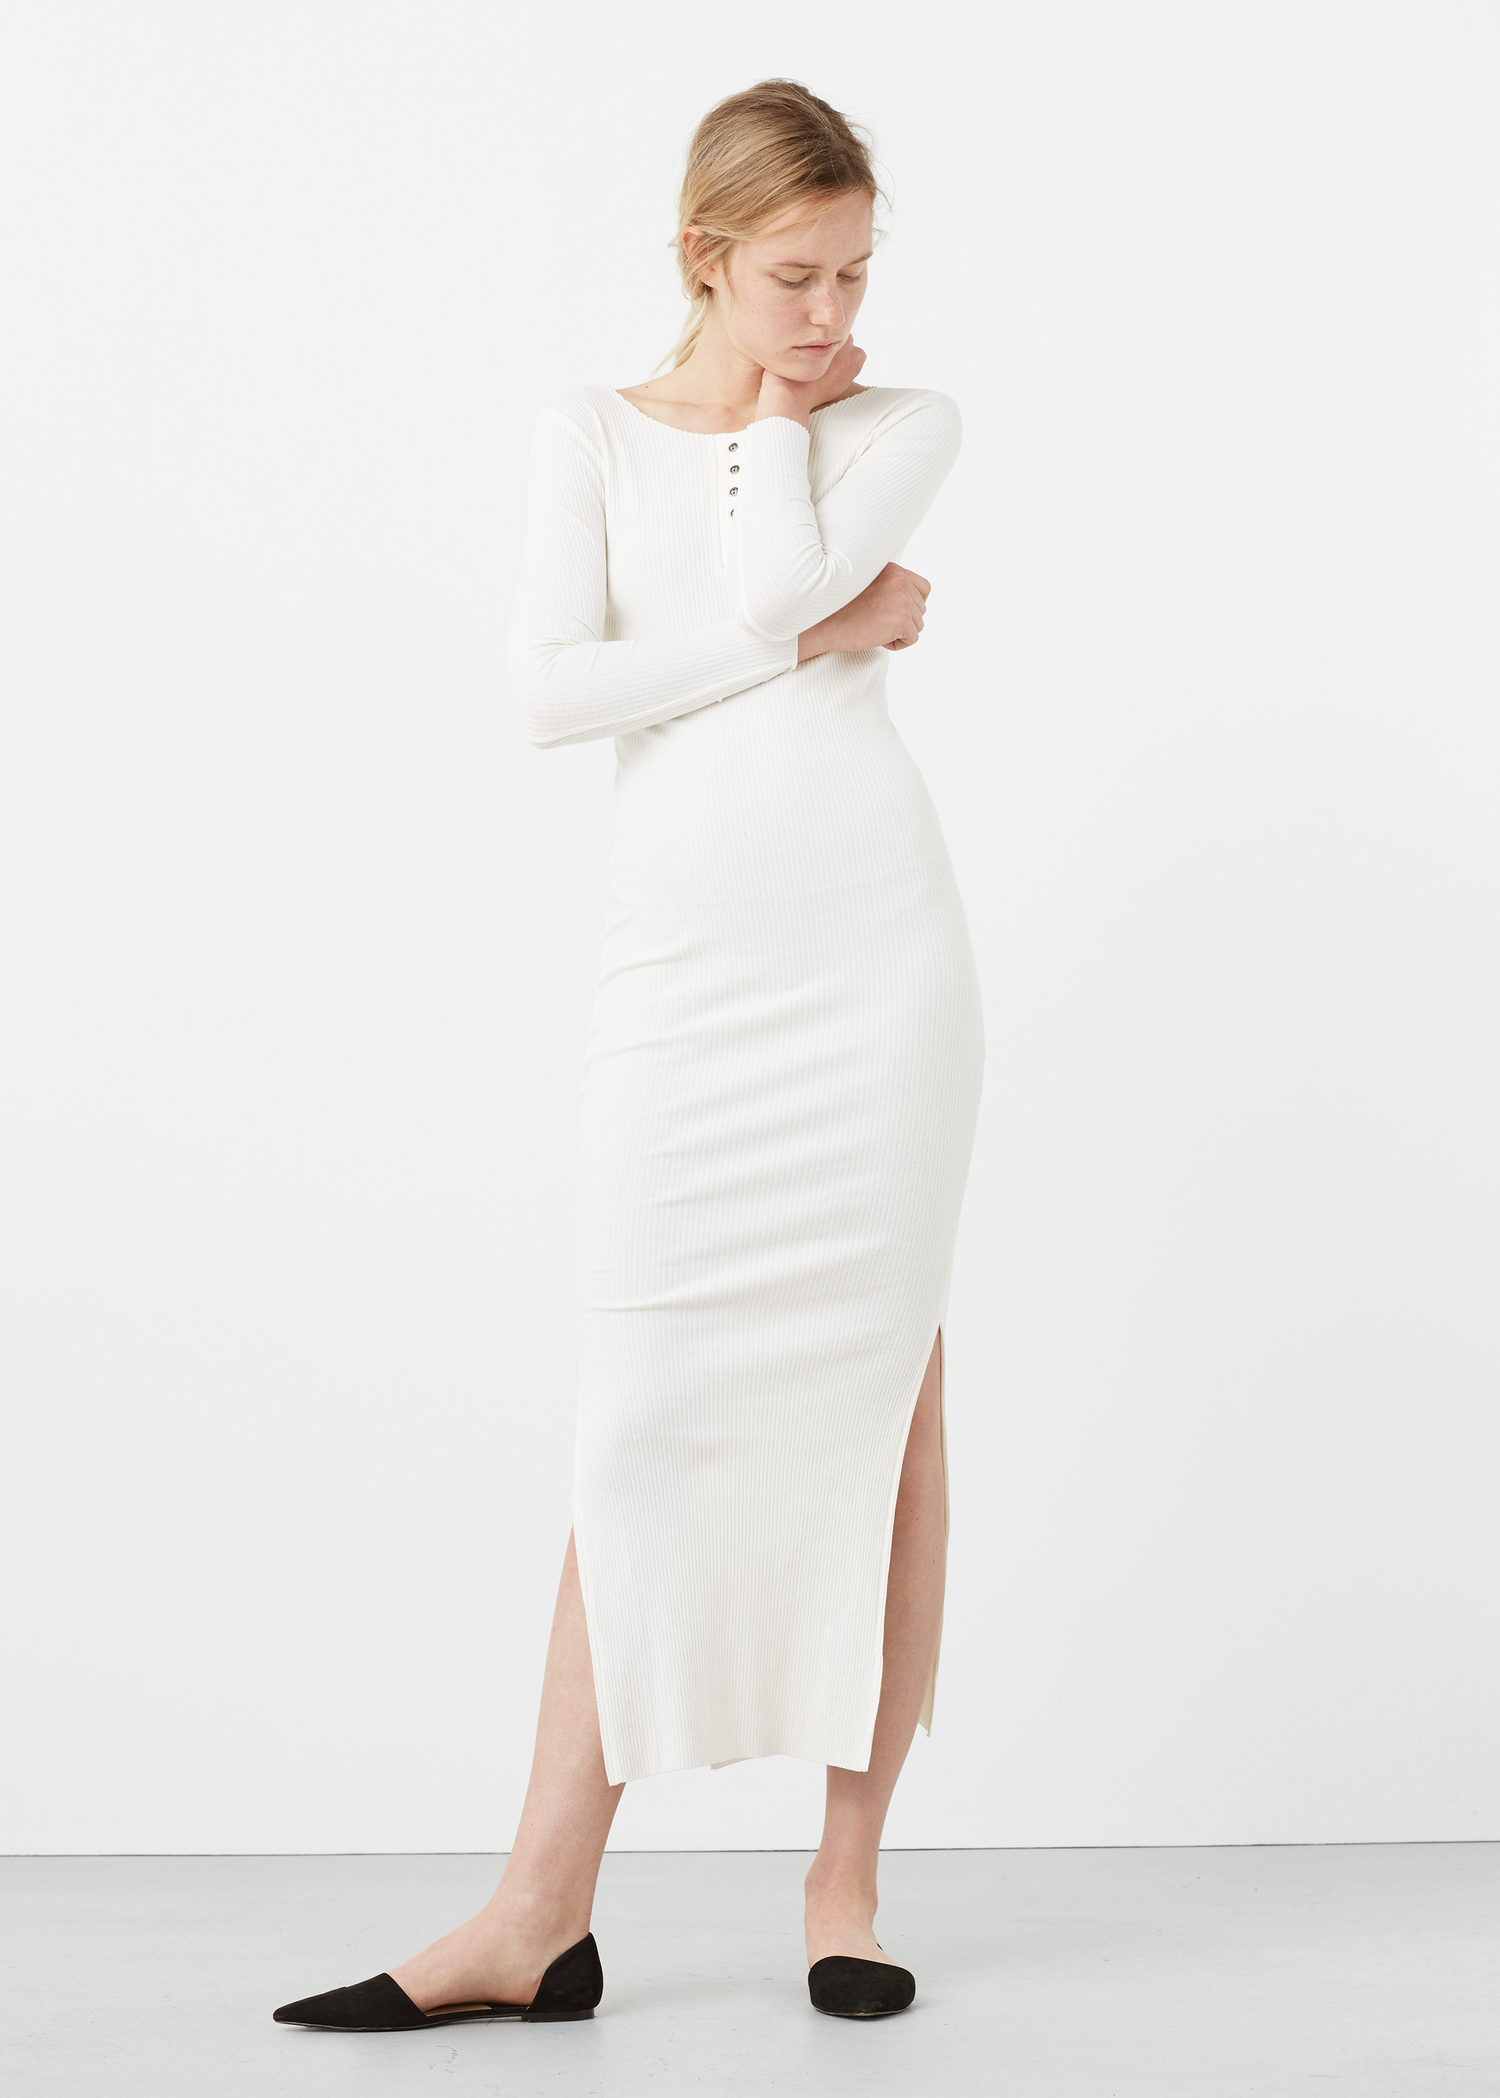 humanlike.co Tailored ribbed dress by Mango